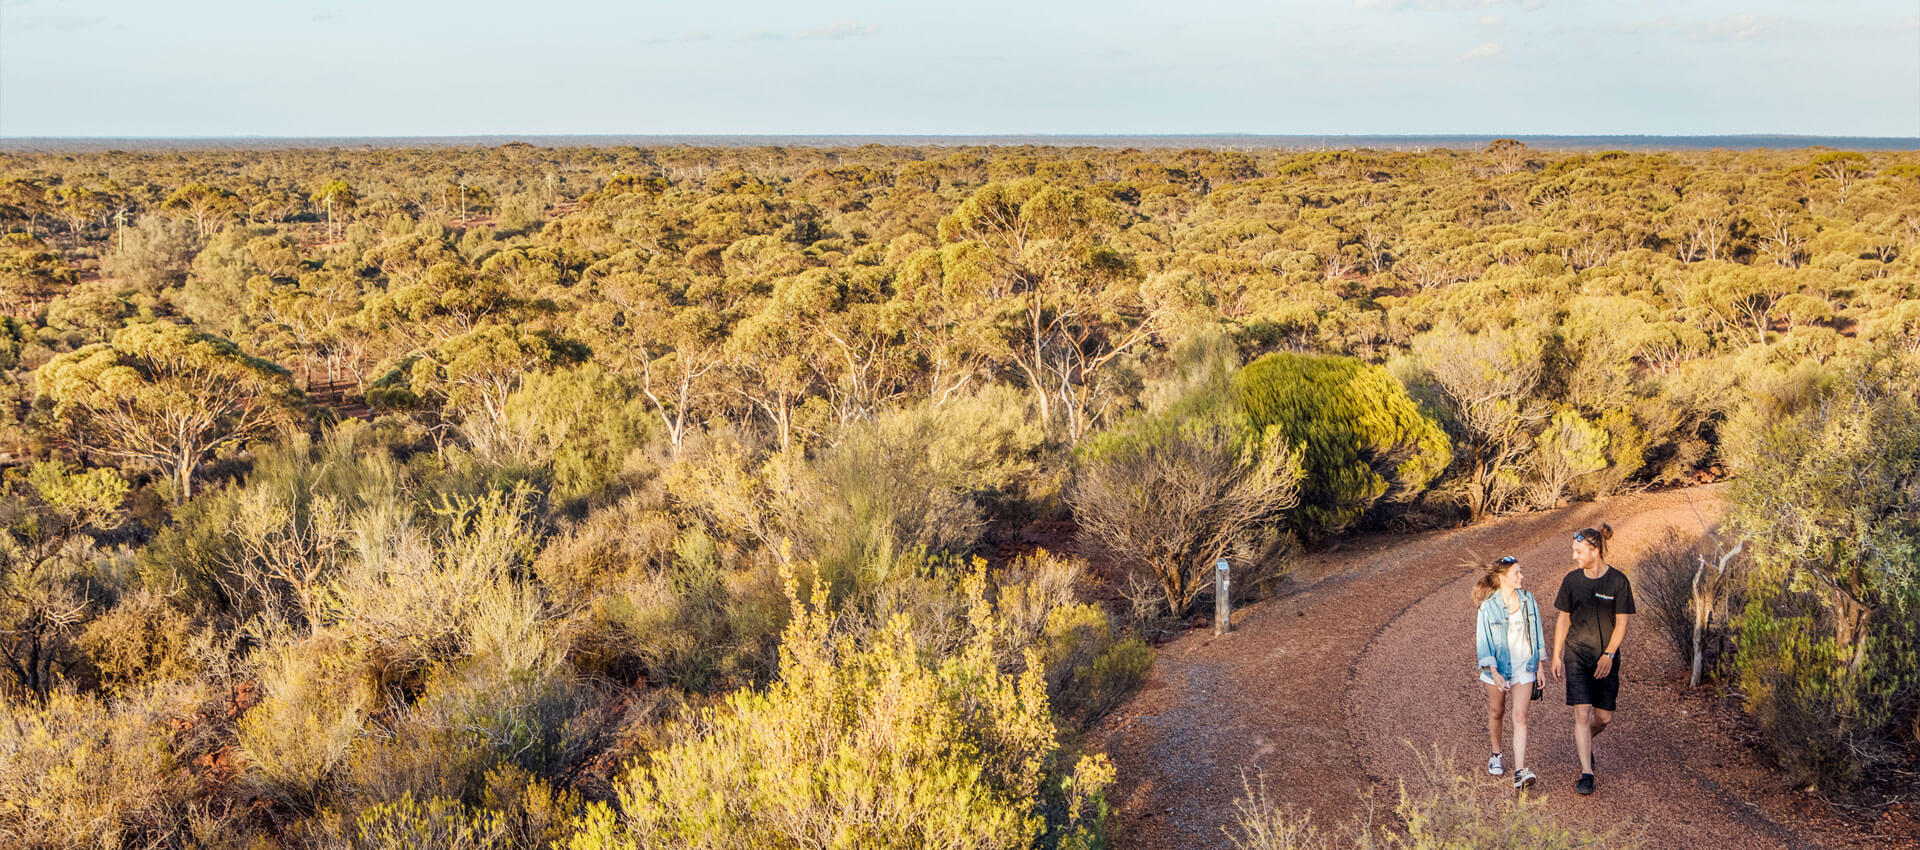 Karlkurla Bushland Park - Photo by Australia's Golden Outback